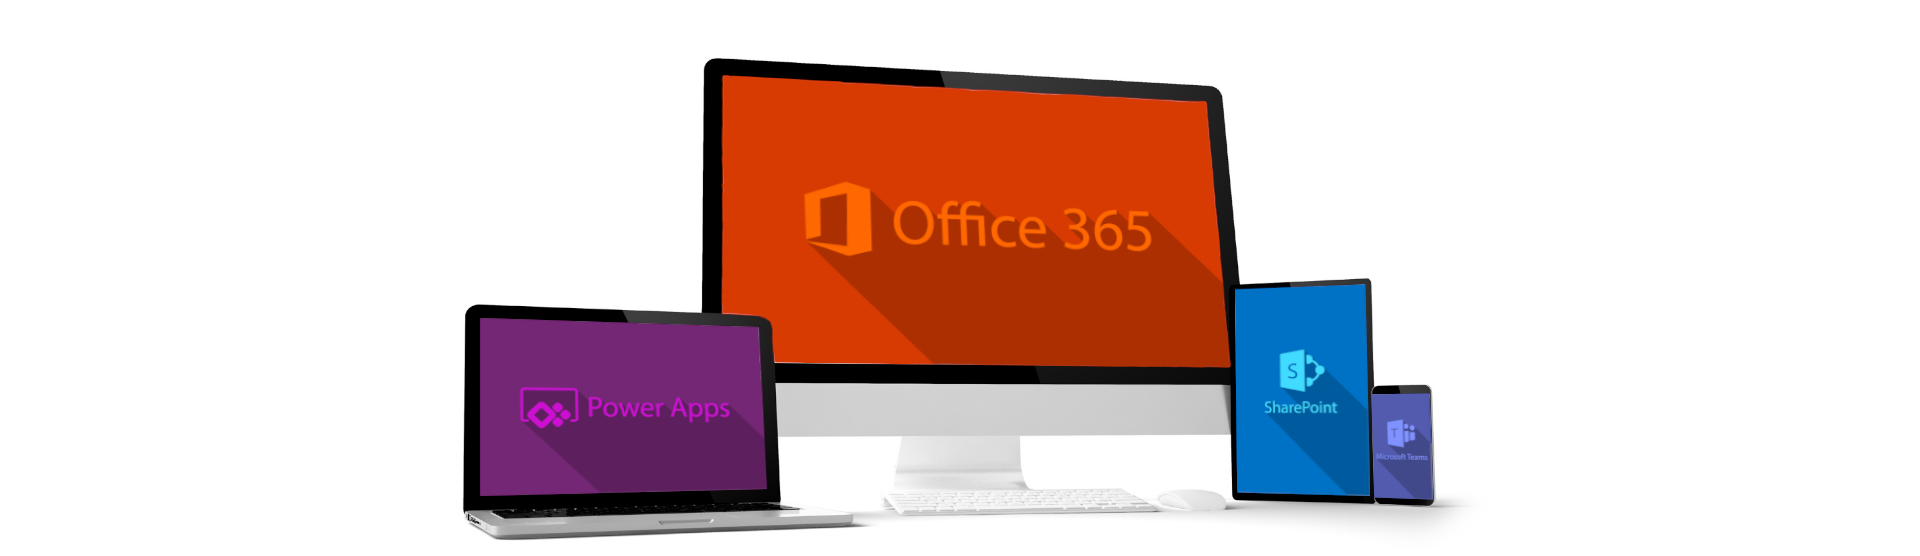 Office 365 with Azure